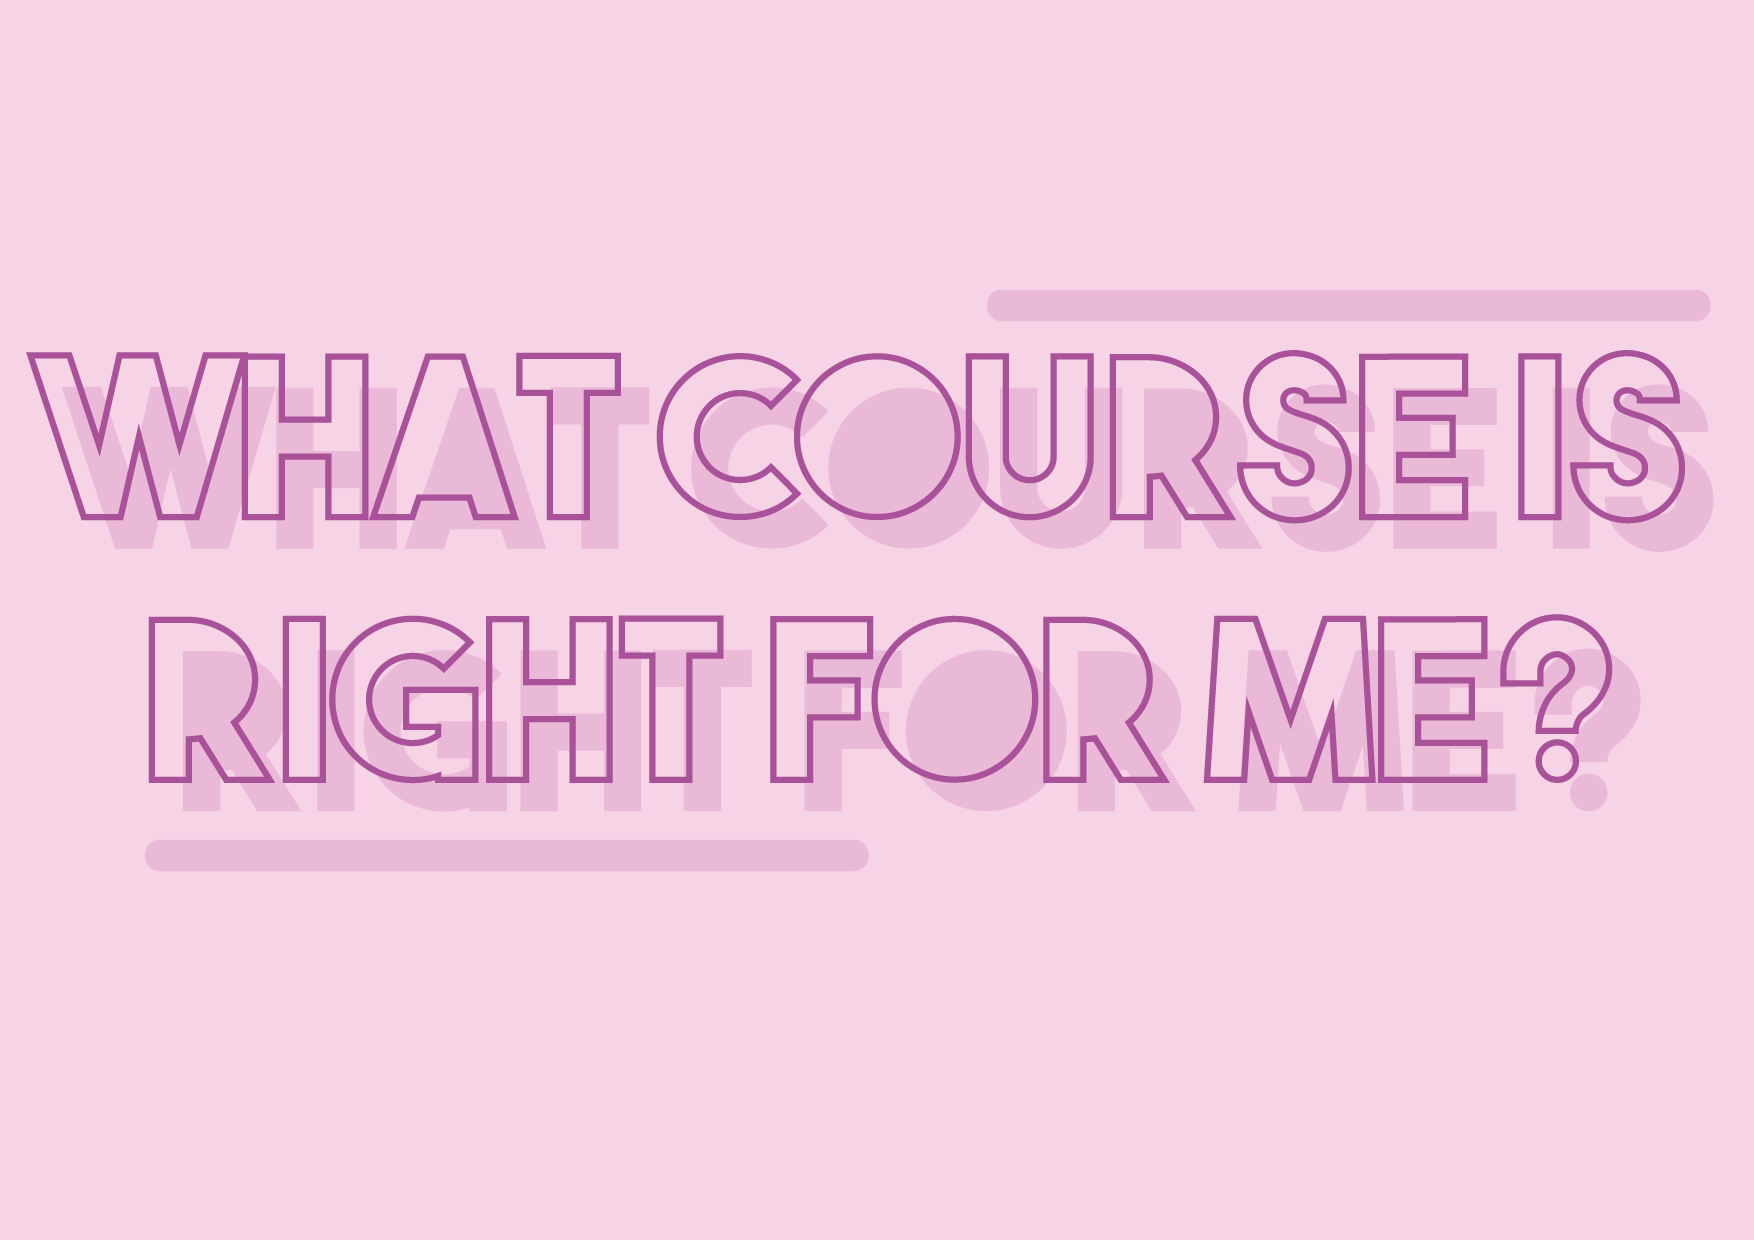 What Course Is Right For Me?